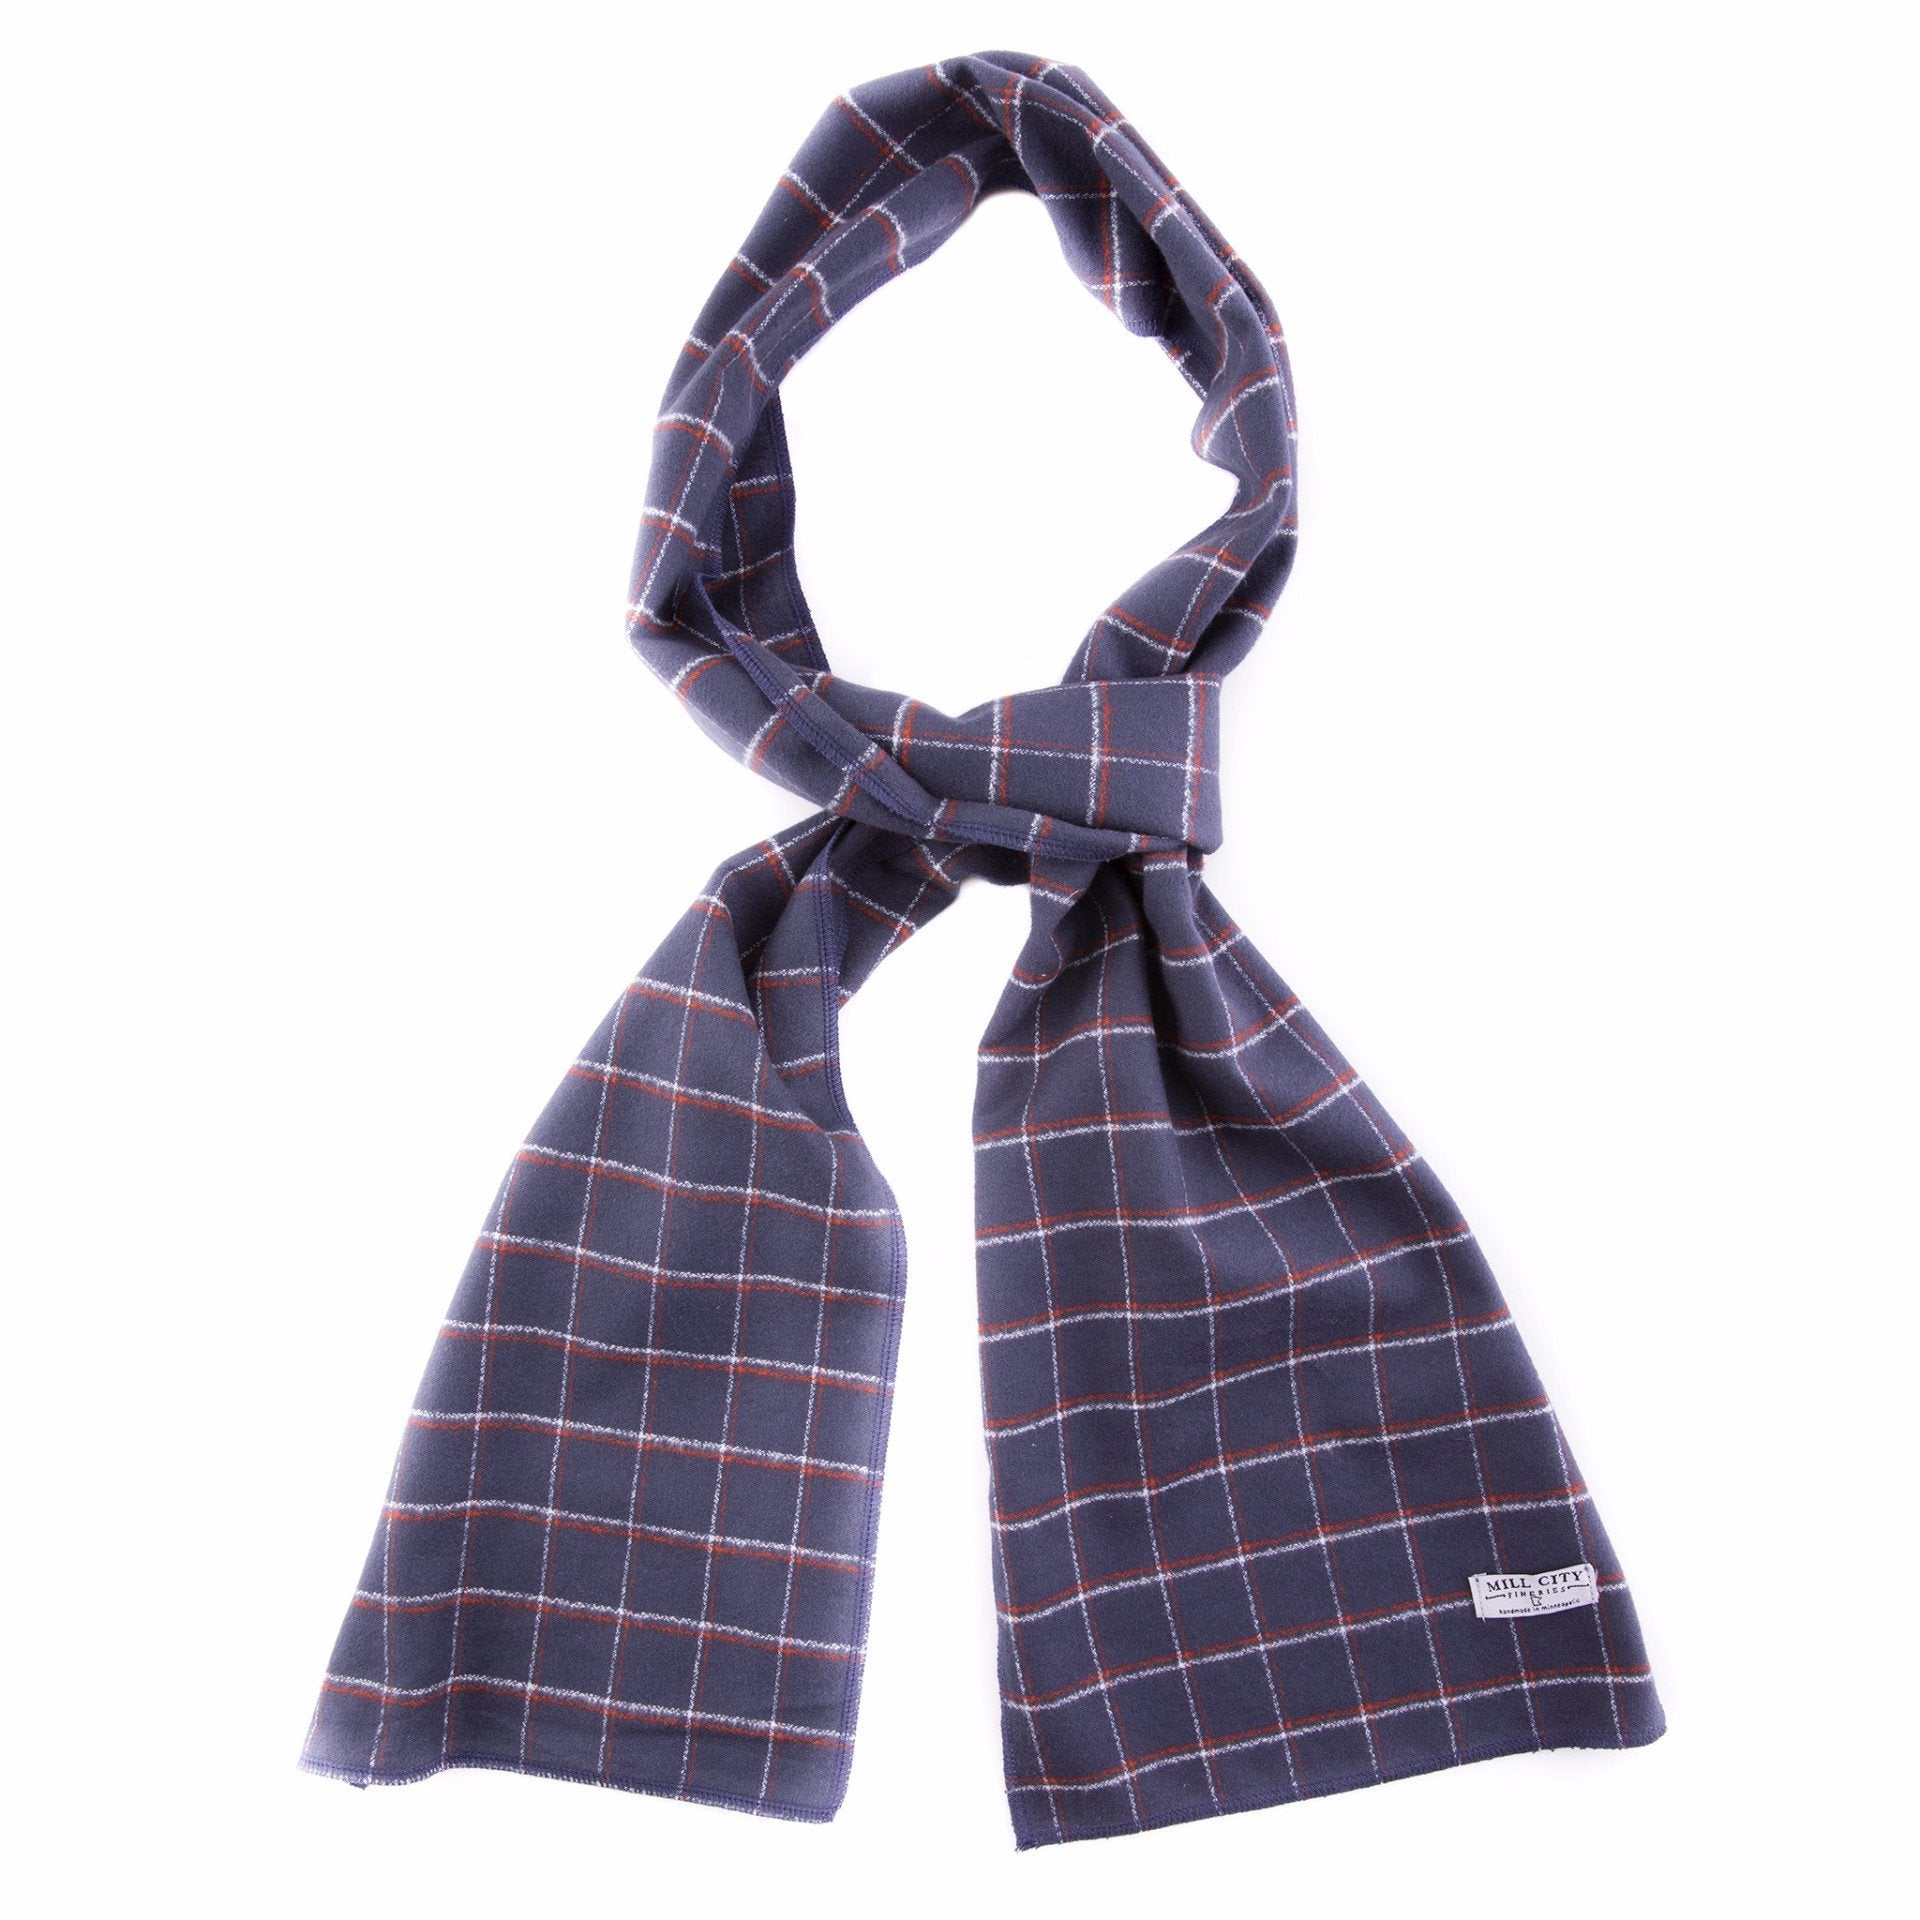 Mill City Fineries Ambassador Plaid Flannel Scarf